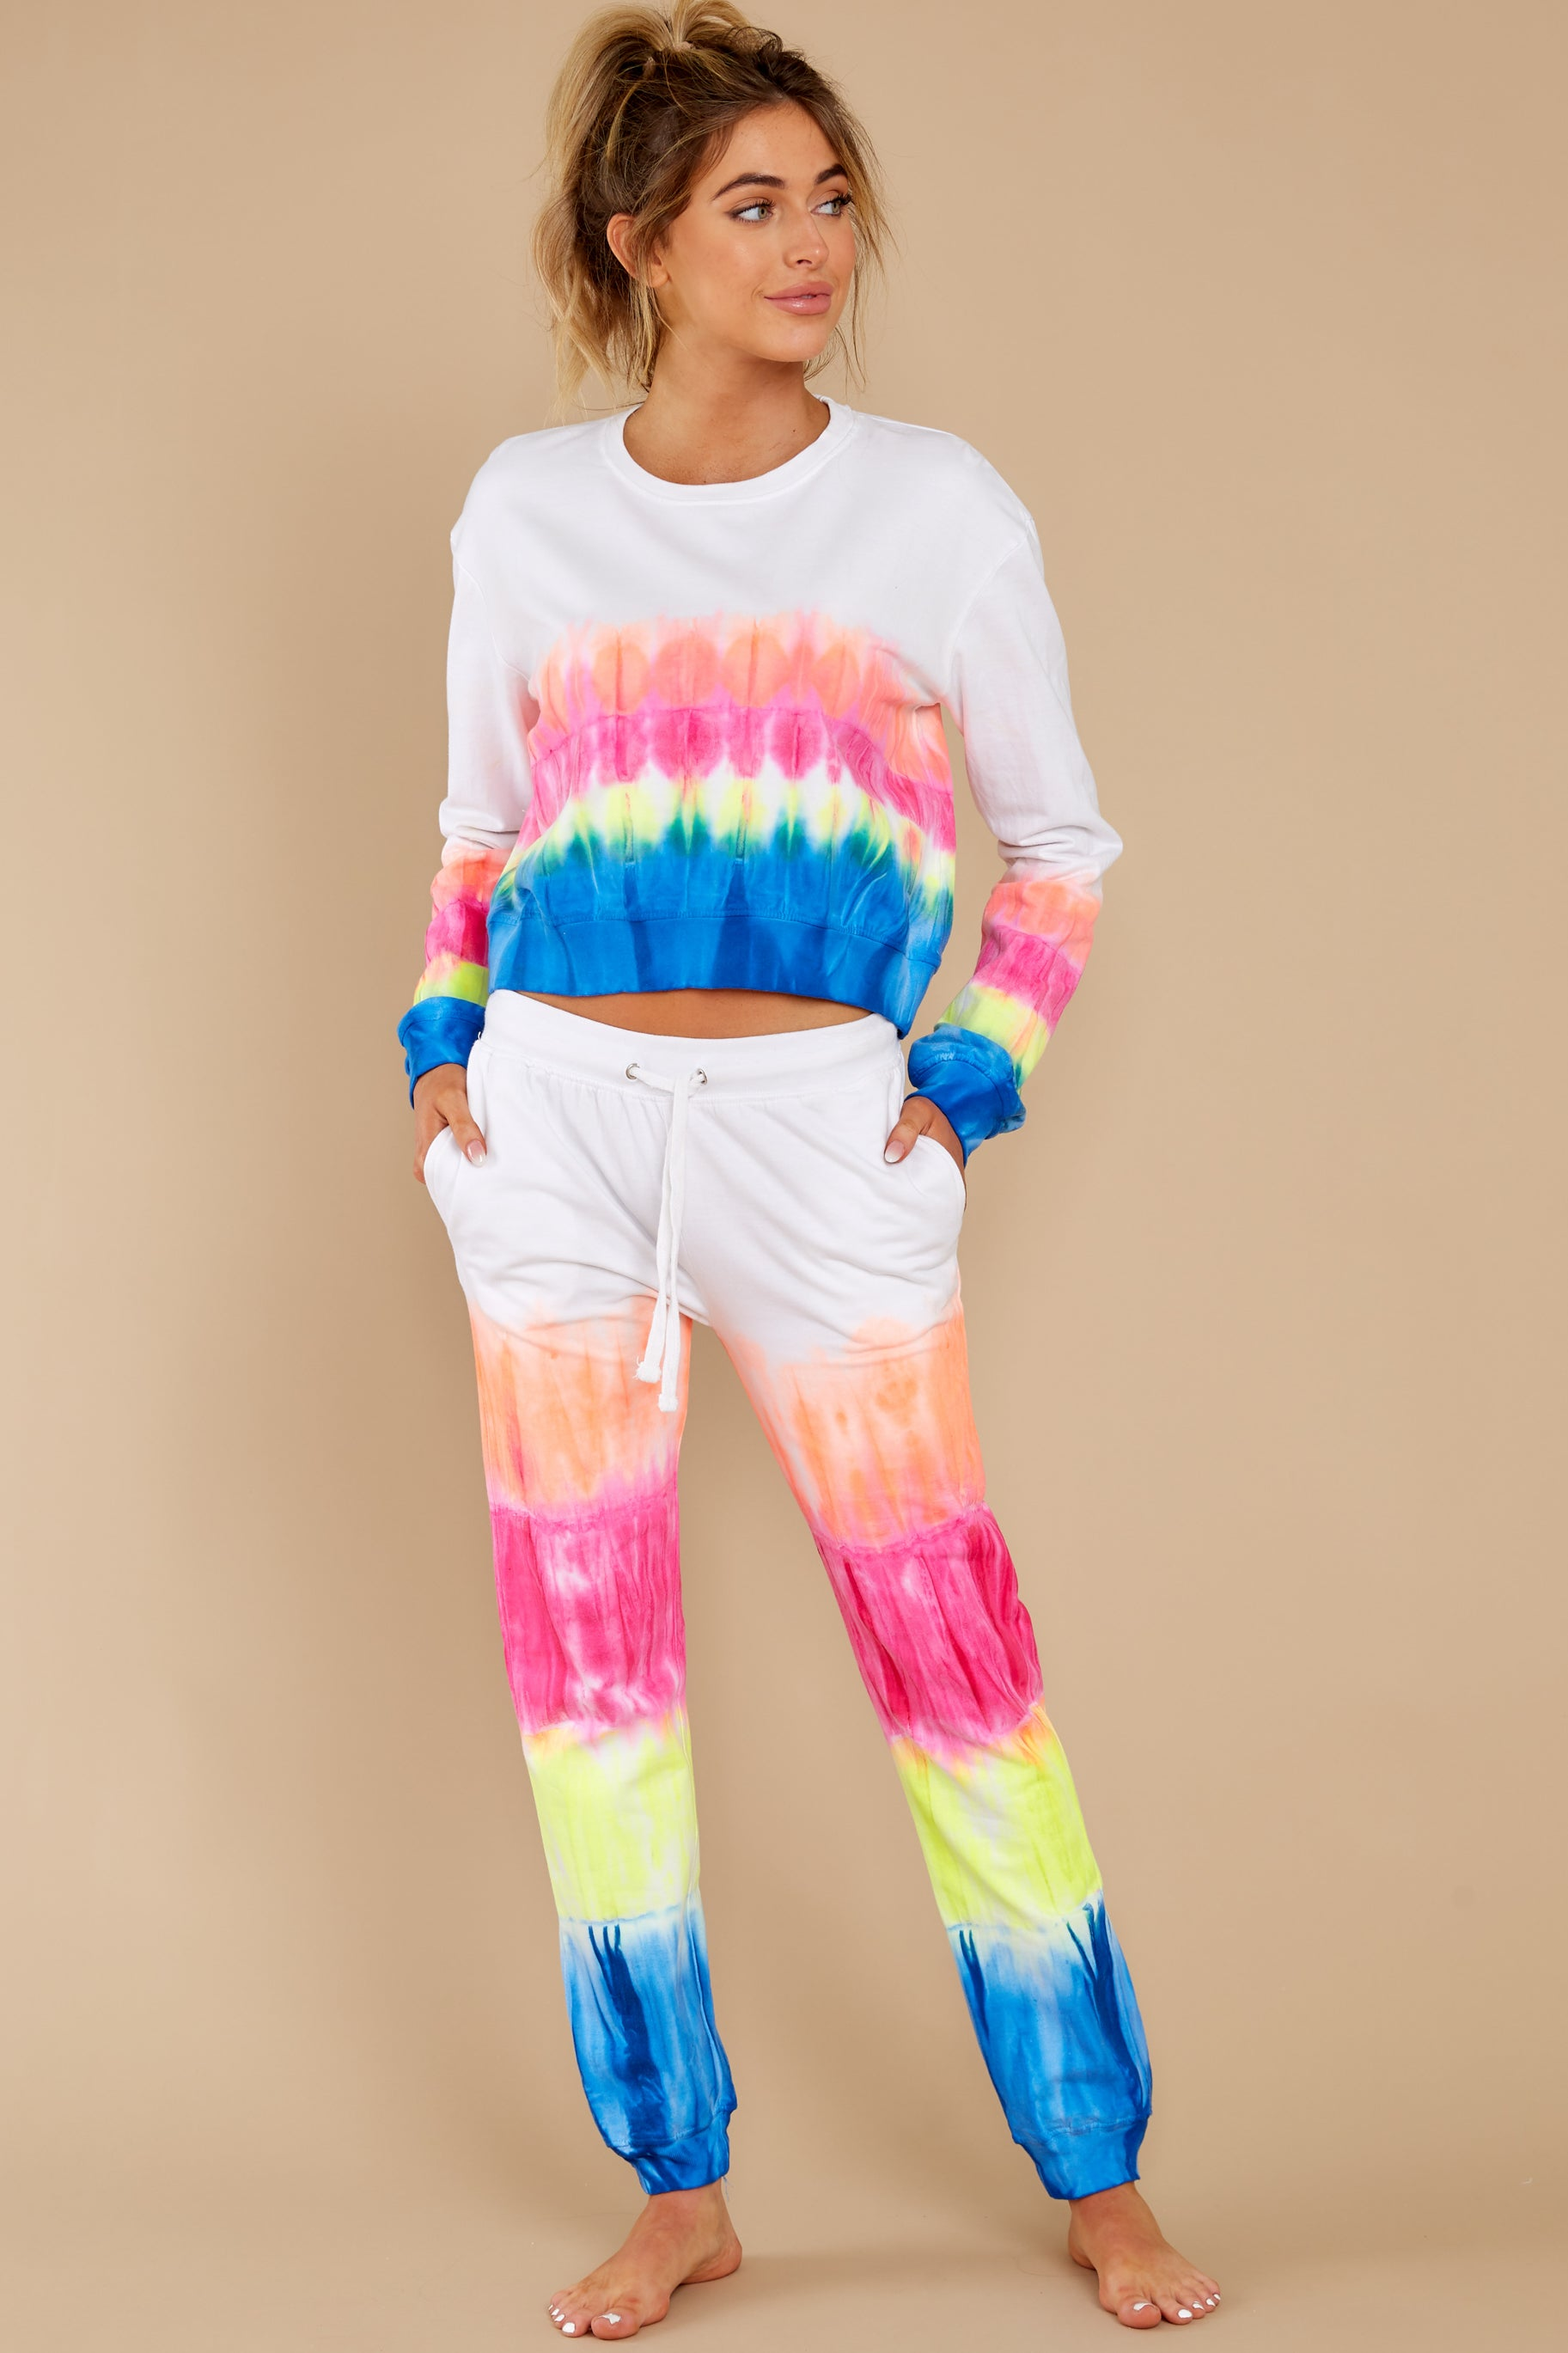 3 Relax Zone Neon Mirage Tie Dye Joggers at reddress.com